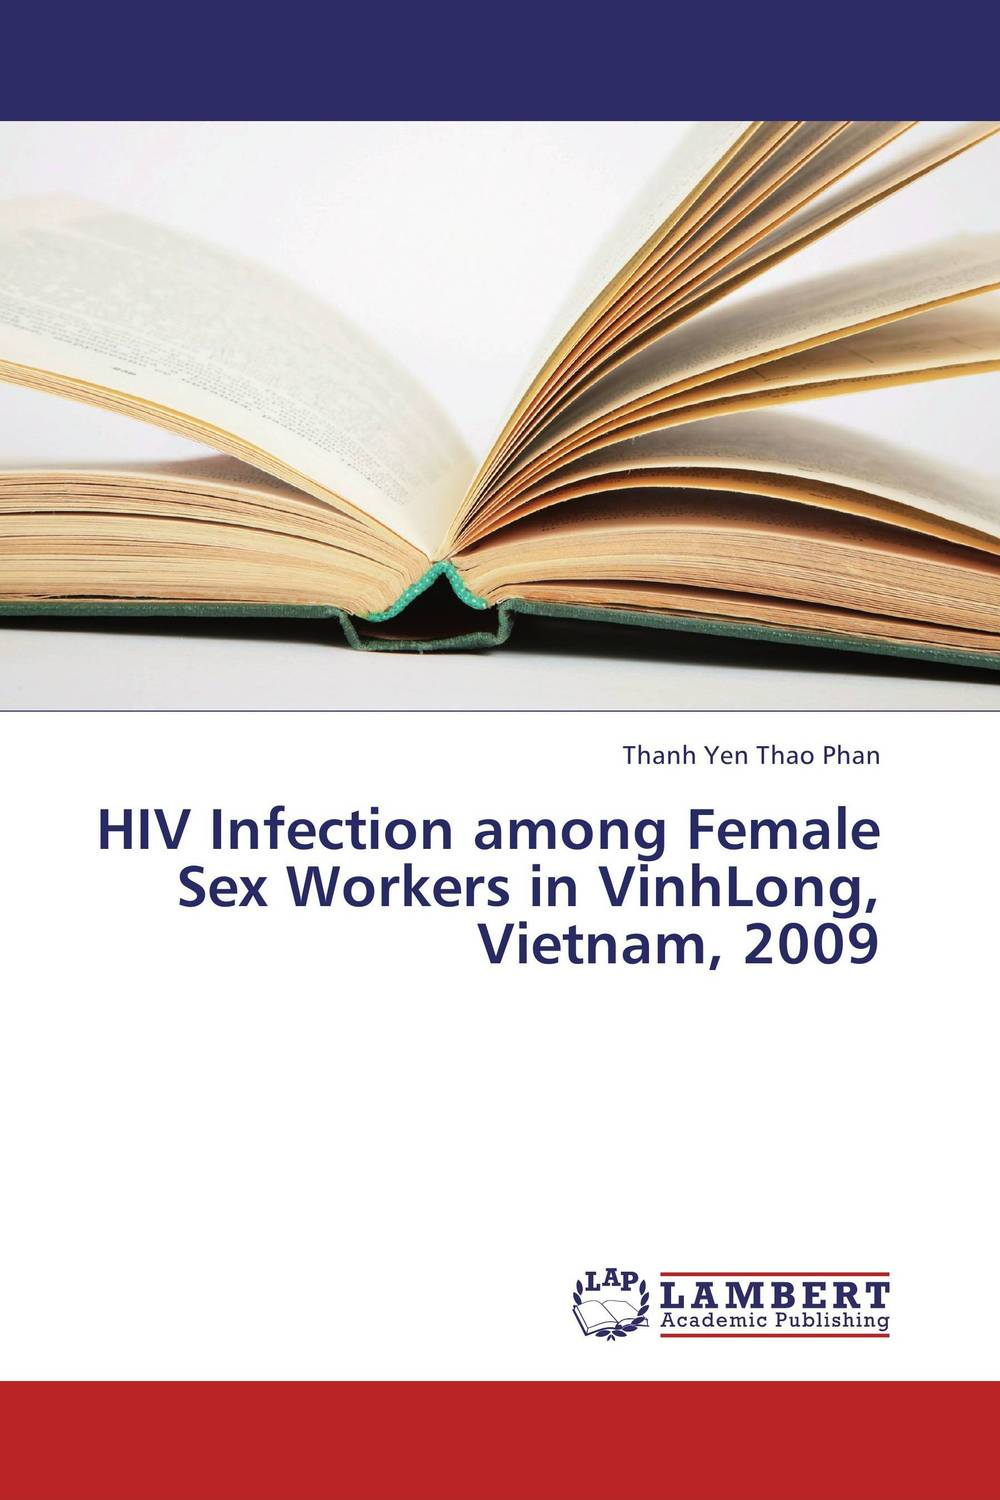 HIV Infection among Female Sex Workers in VinhLong, Vietnam, 2009 risk factors associated with tb co infection in hiv aids patients